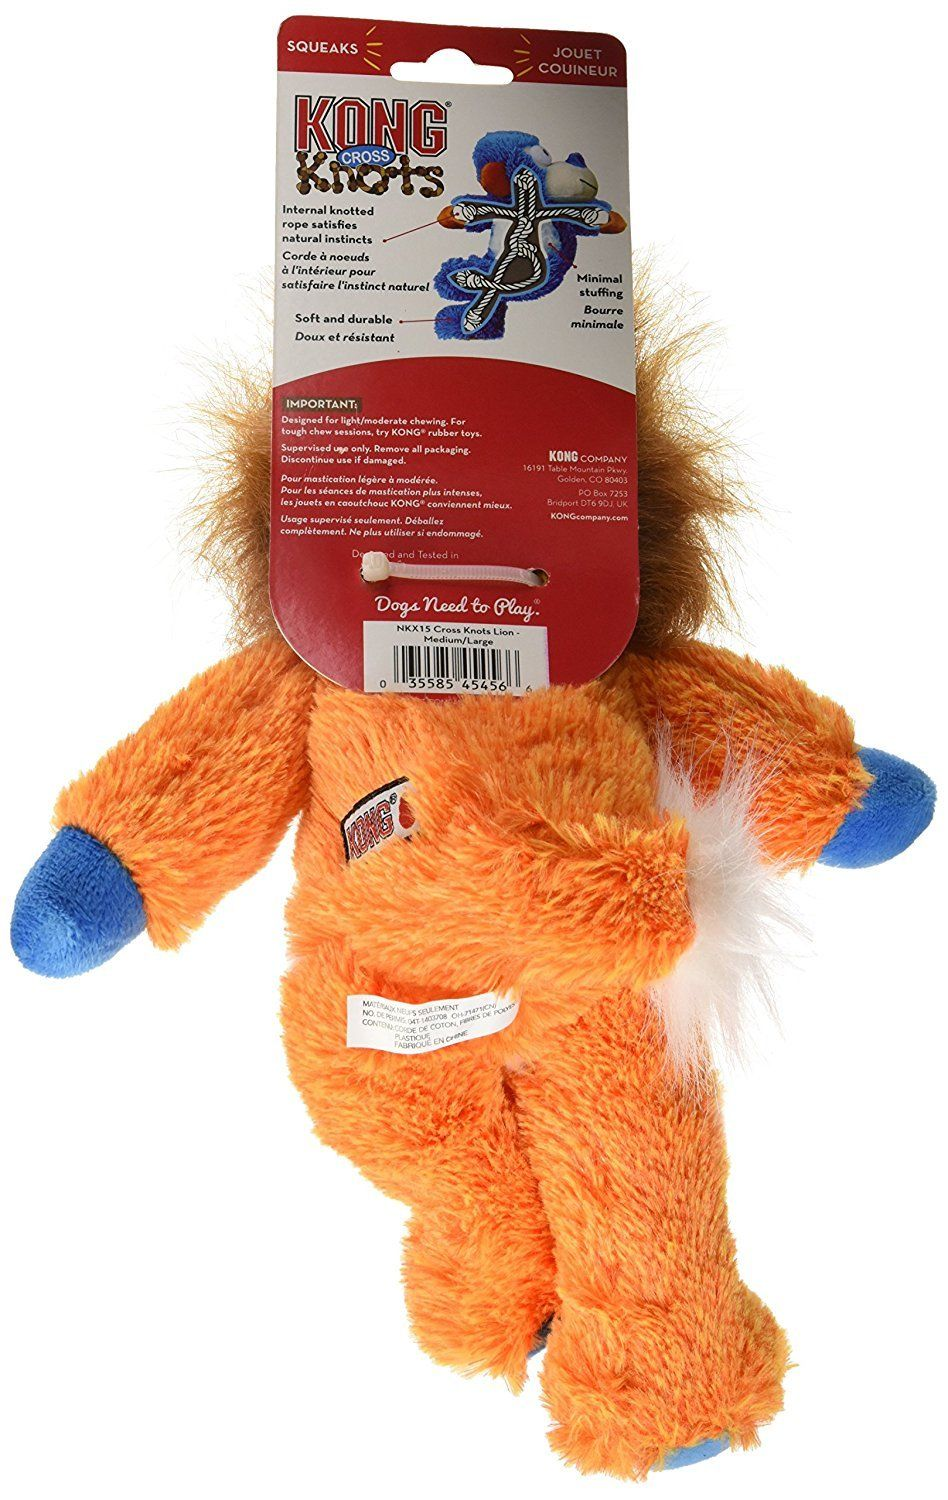 Kong Cross Knots Plush Squeaky Lion Dog Toy Medium Large You